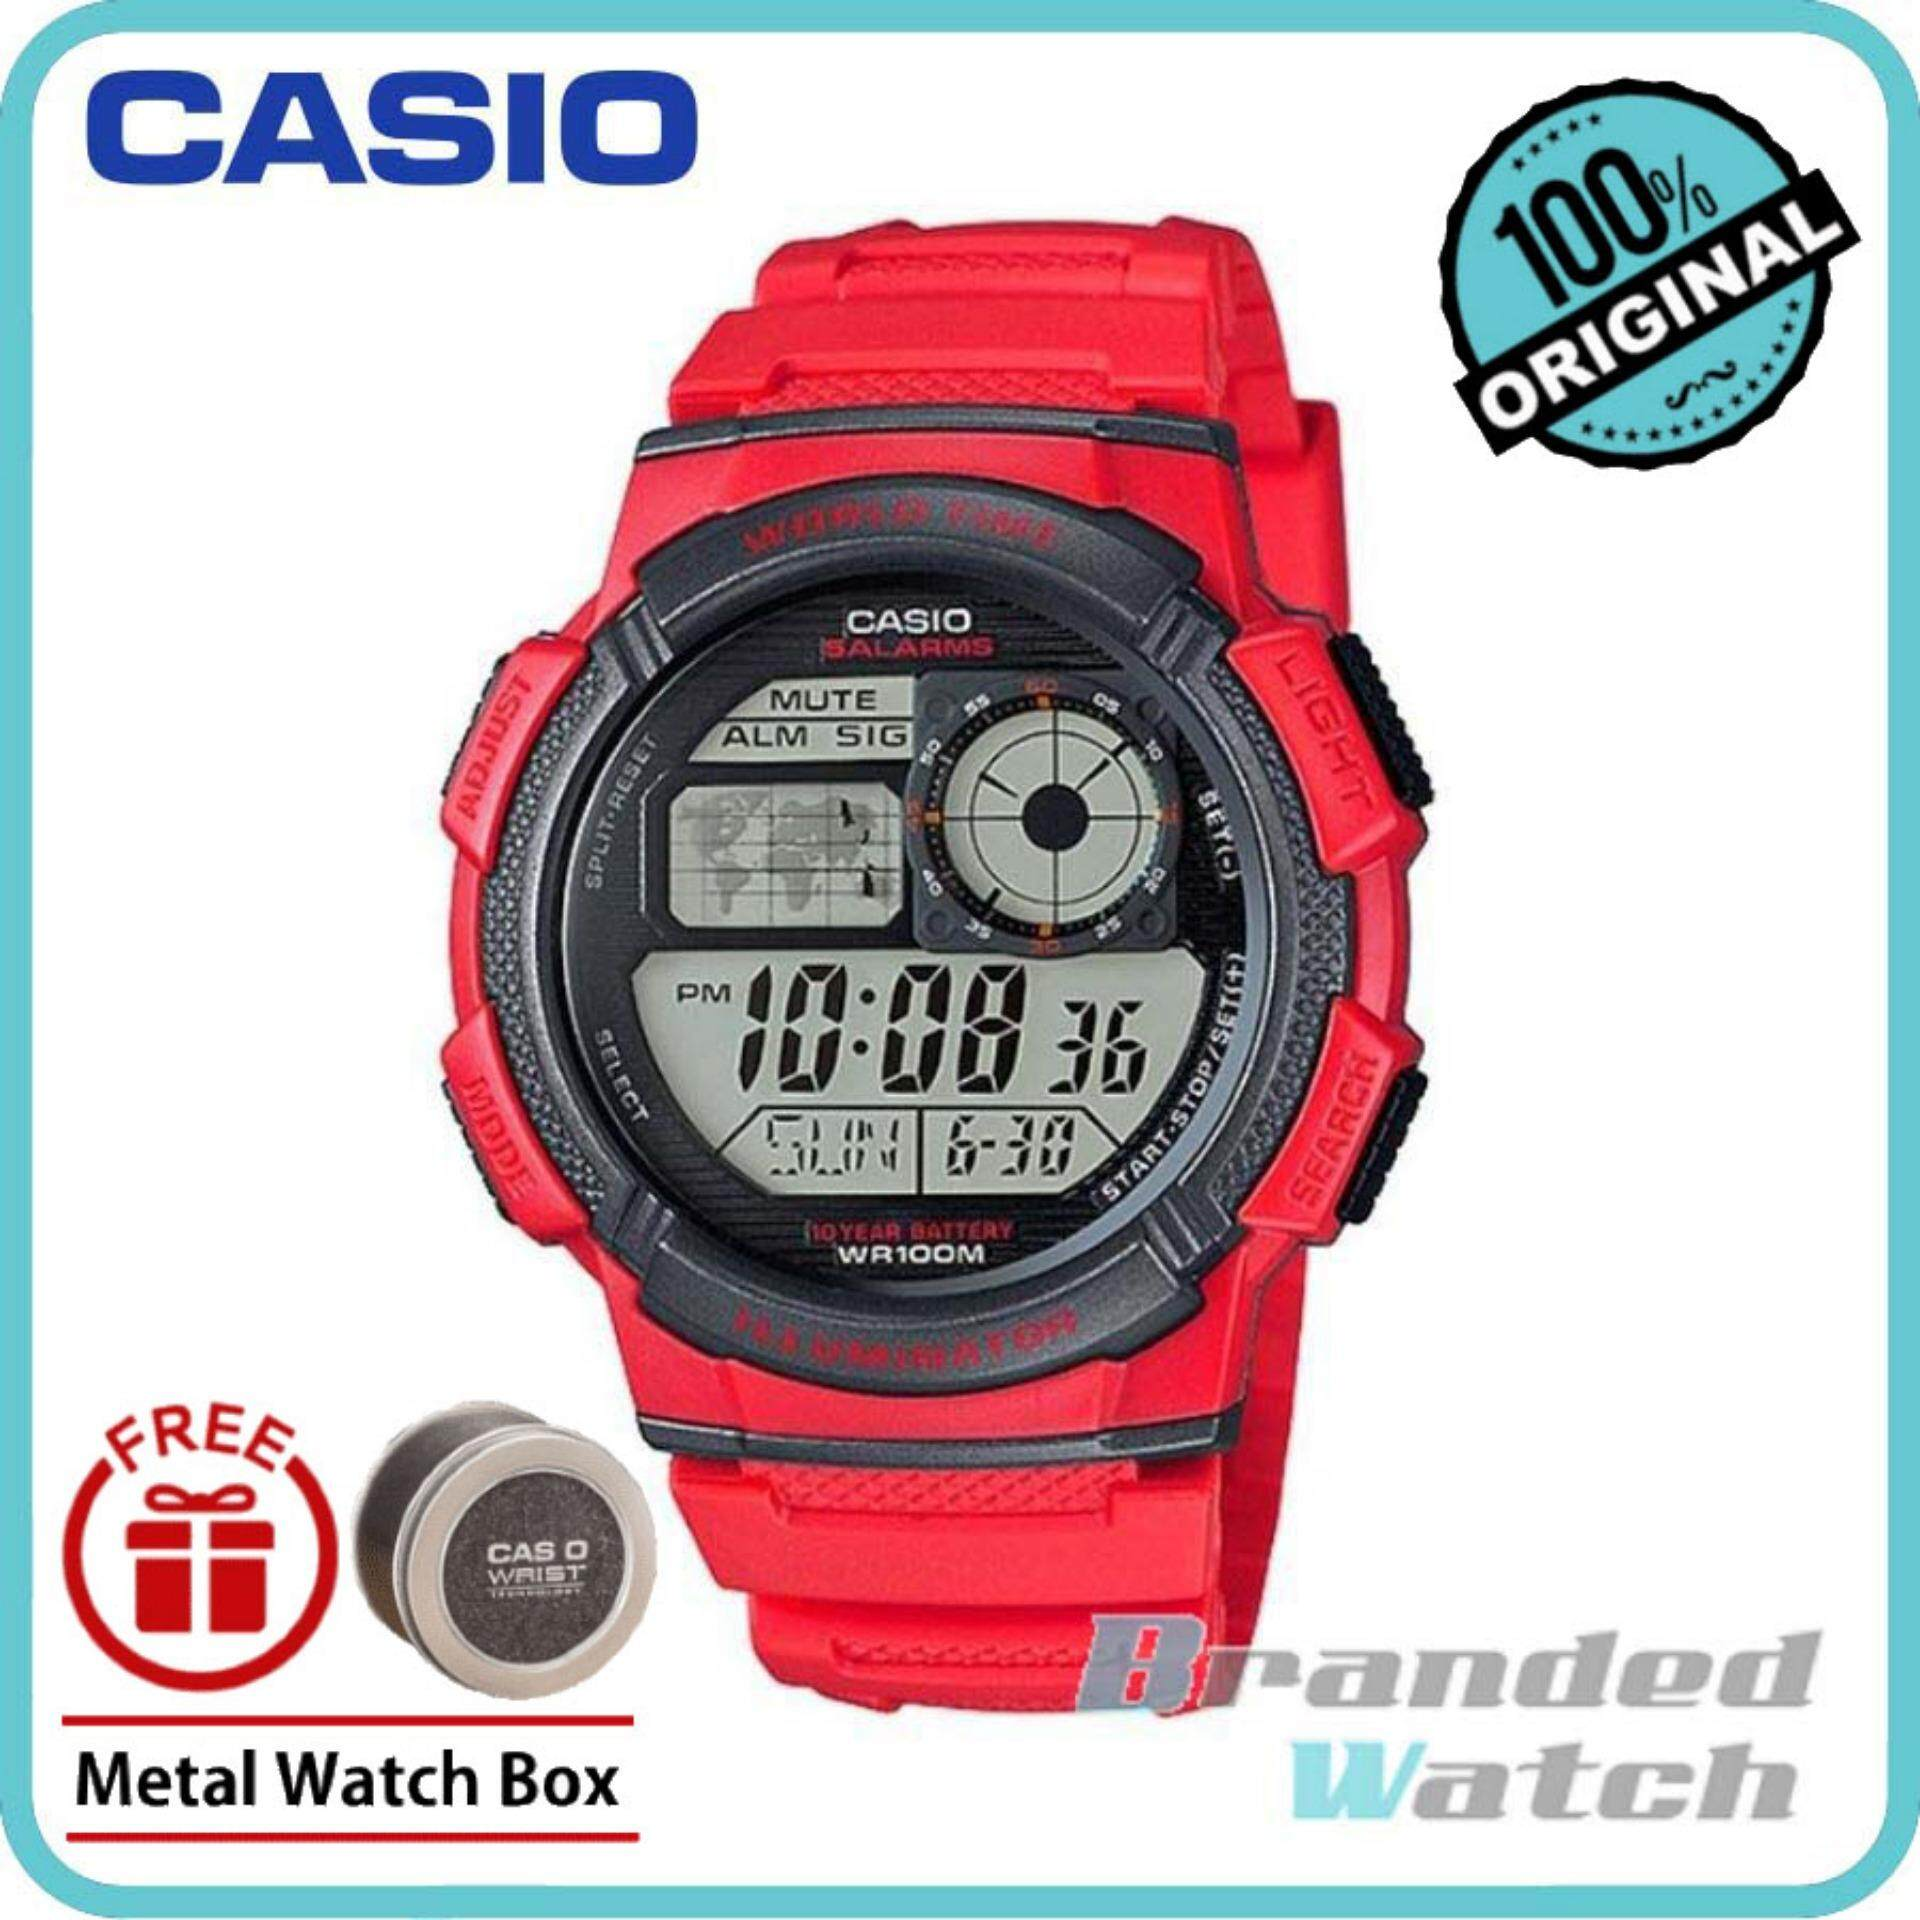 eb13c89ea2f Casio Products for the Best Price in Malaysia